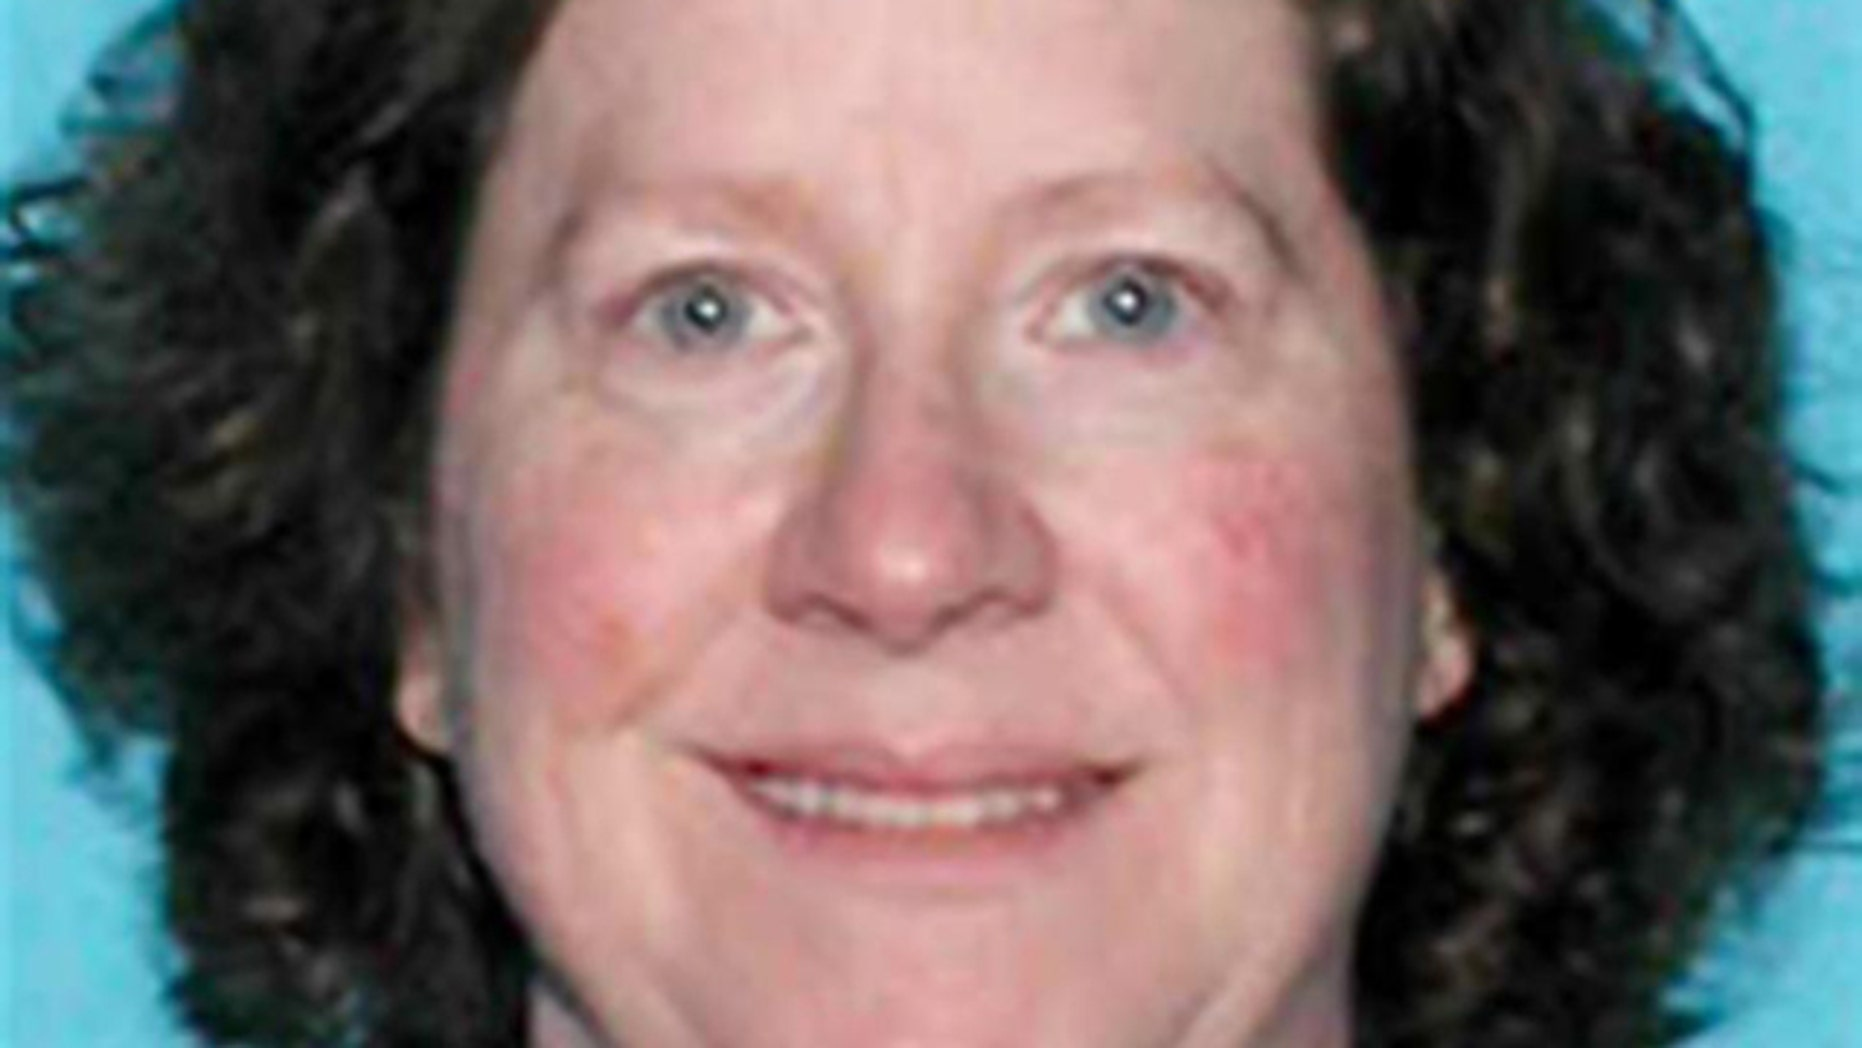 September 28, 2014: This photo released last week shows Cynthia Adams, 52, of Boise, Idaho. Adams was located over the weekend in her former hometown of Clara, Mississippi. (Boise Police)